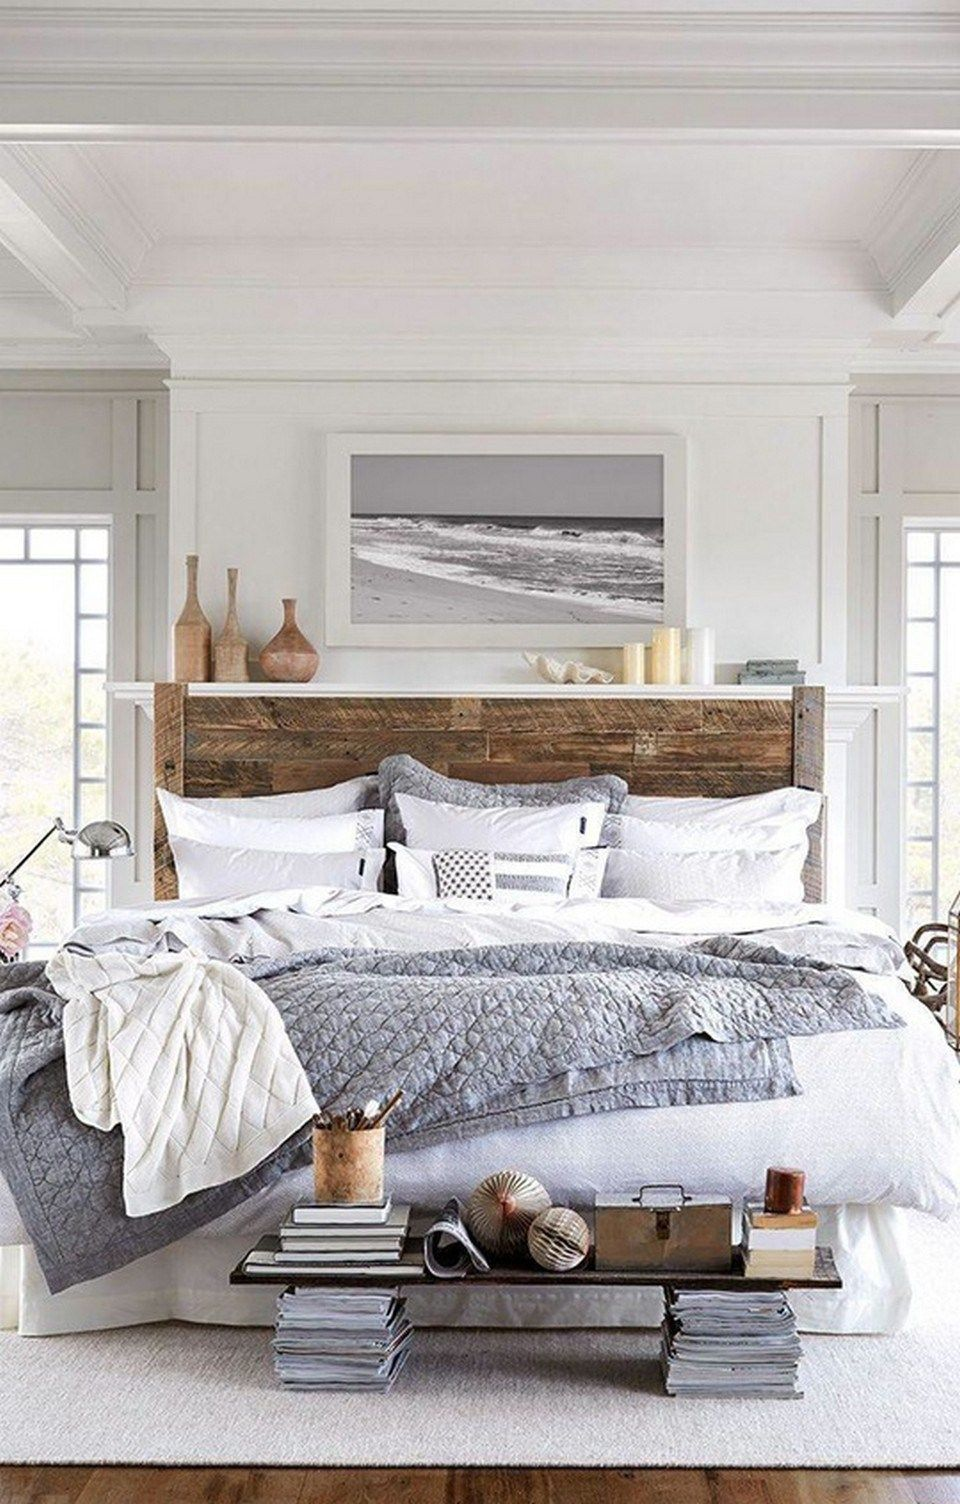 99 Most Beautiful Bedroom Decoration Ideas For Couples (89 ... Nautical Bedroom Decorating Ideas For Couples on nautical decorating ideas for decks, nautical decorating ideas for office, nautical themed rooms, nautical curtains for bedrooms, nautical themed bedroom ideas, nautical accessories for bedrooms, nautical decorating ideas for bar, nautical decorating ideas kitchen, nautical theme boys room, nautical wallpaper for bedrooms, nautical colors for bedrooms, nautical decorating ideas for outdoors, nautical bathroom decorating ideas,